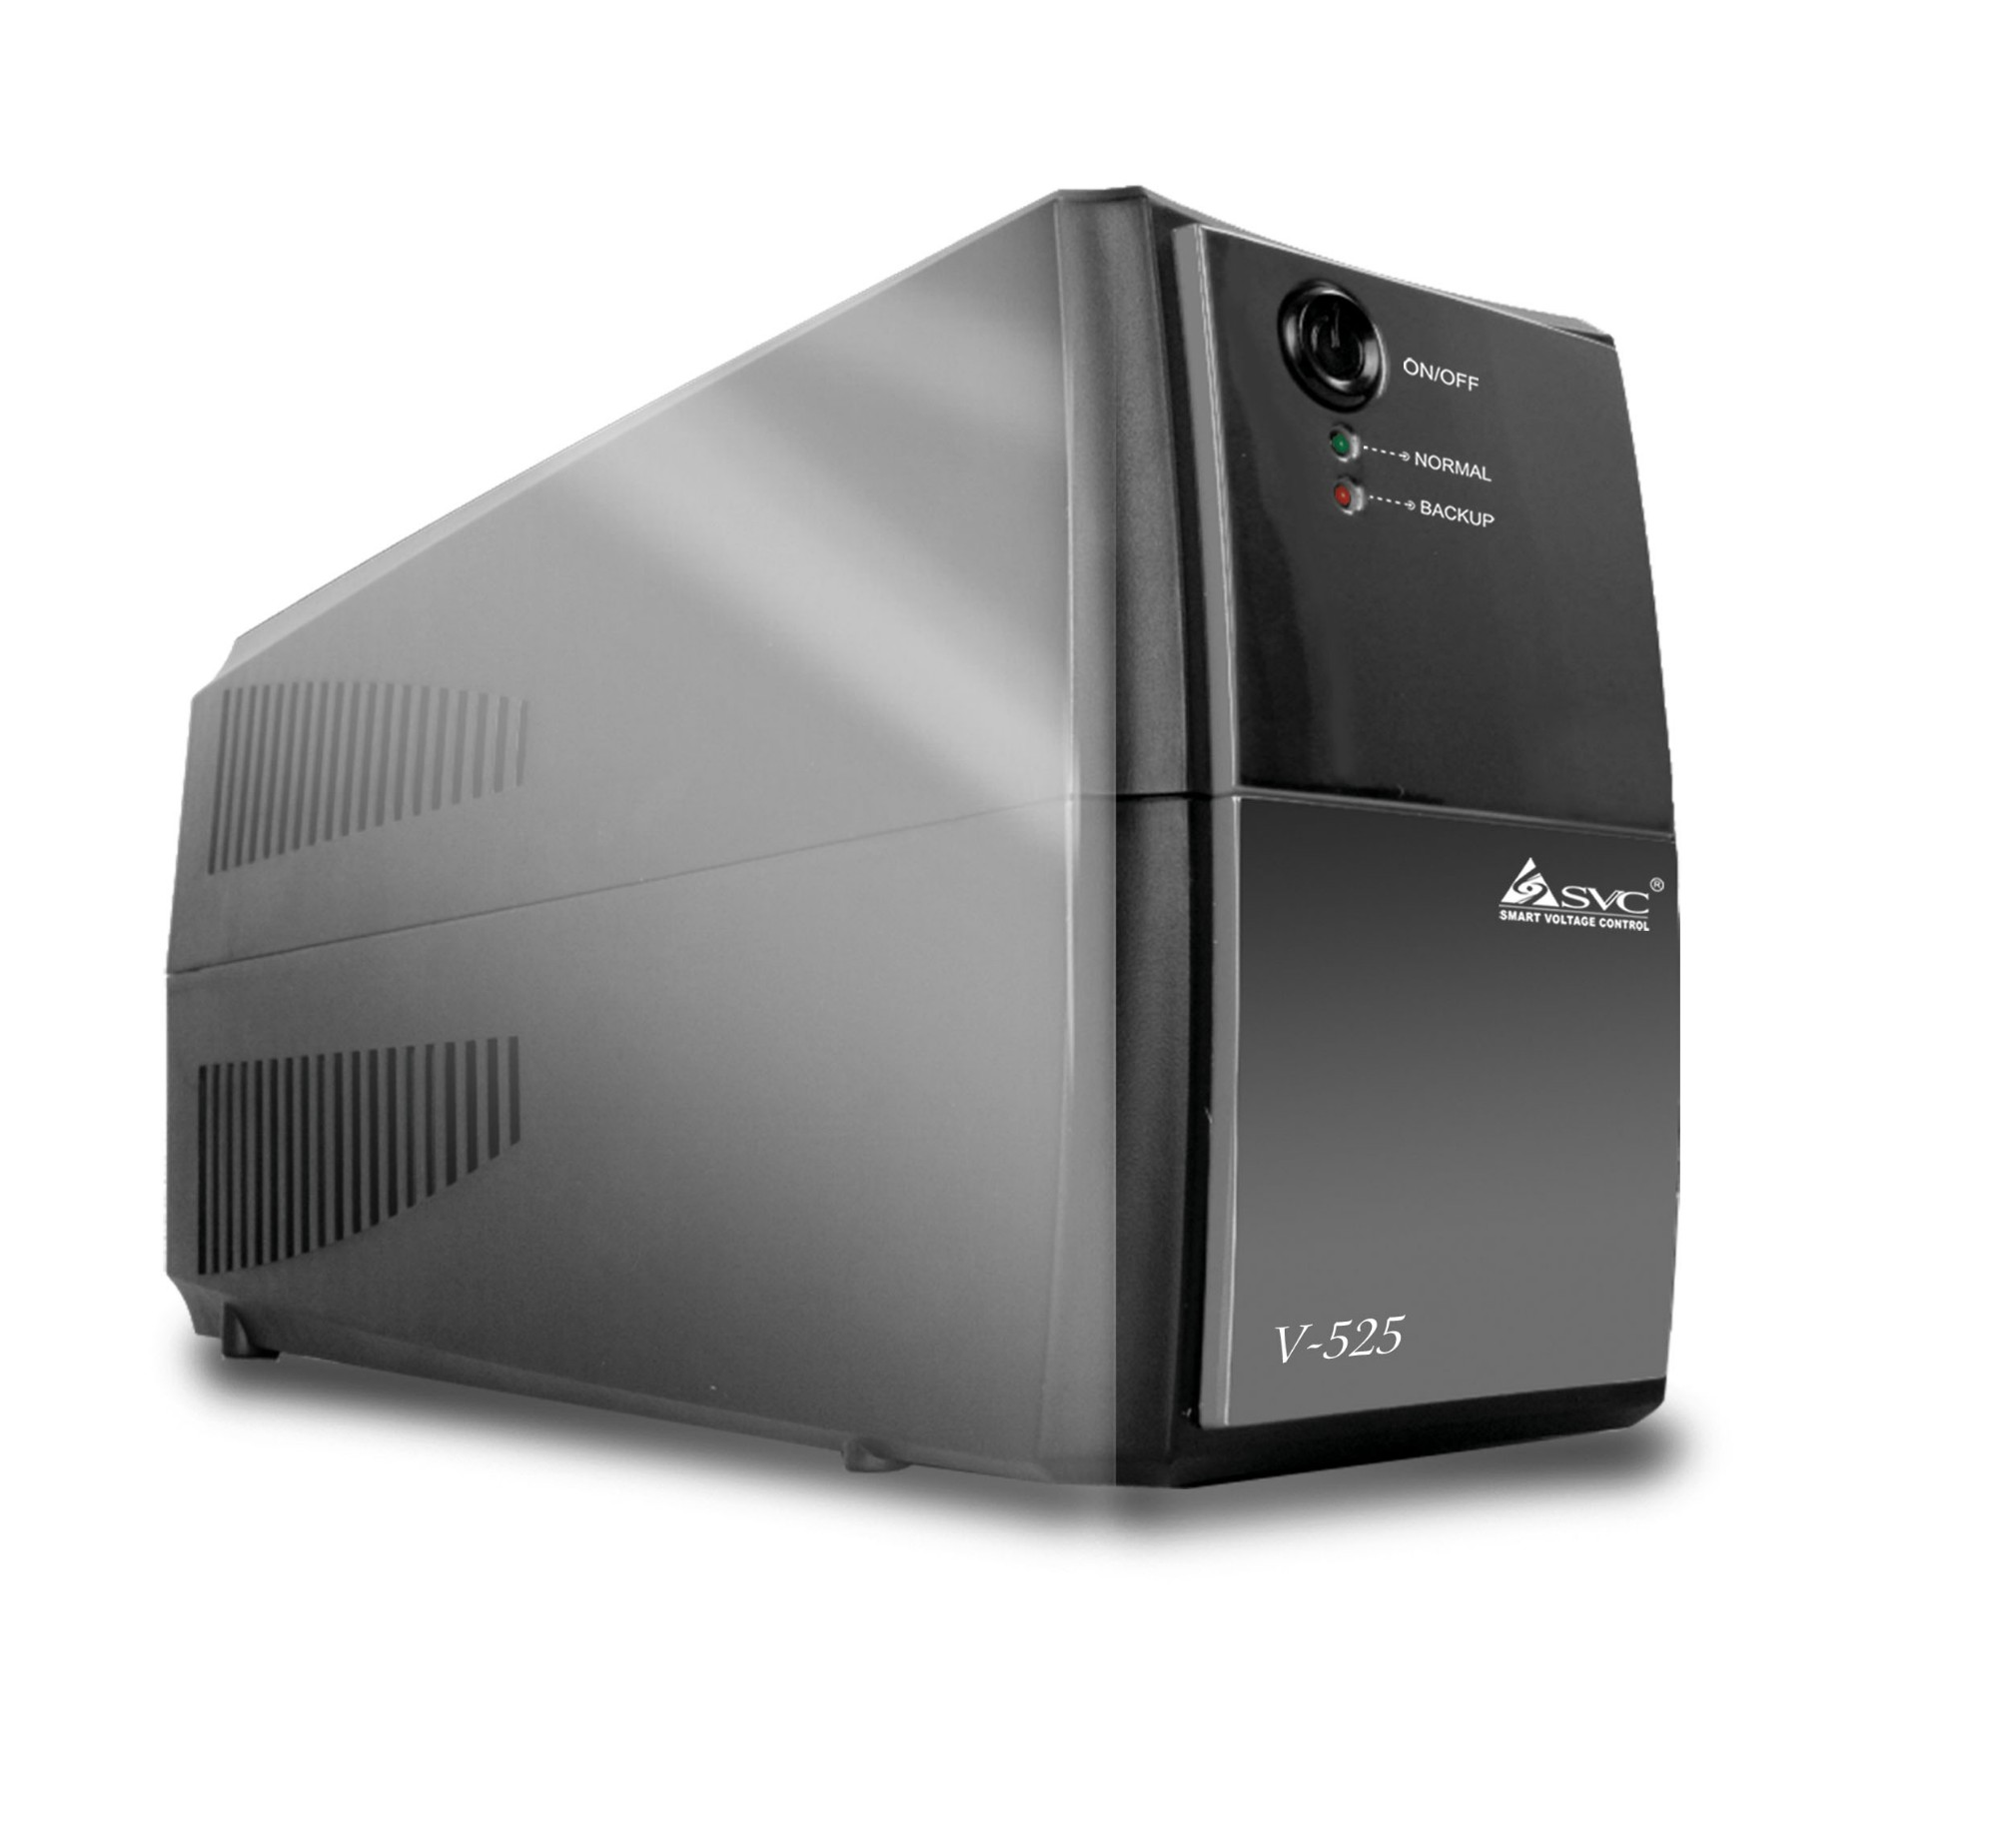 Computer Backup Ups Inverter Manufacturers, Computer Backup Ups Inverter Factory, Supply Computer Backup Ups Inverter